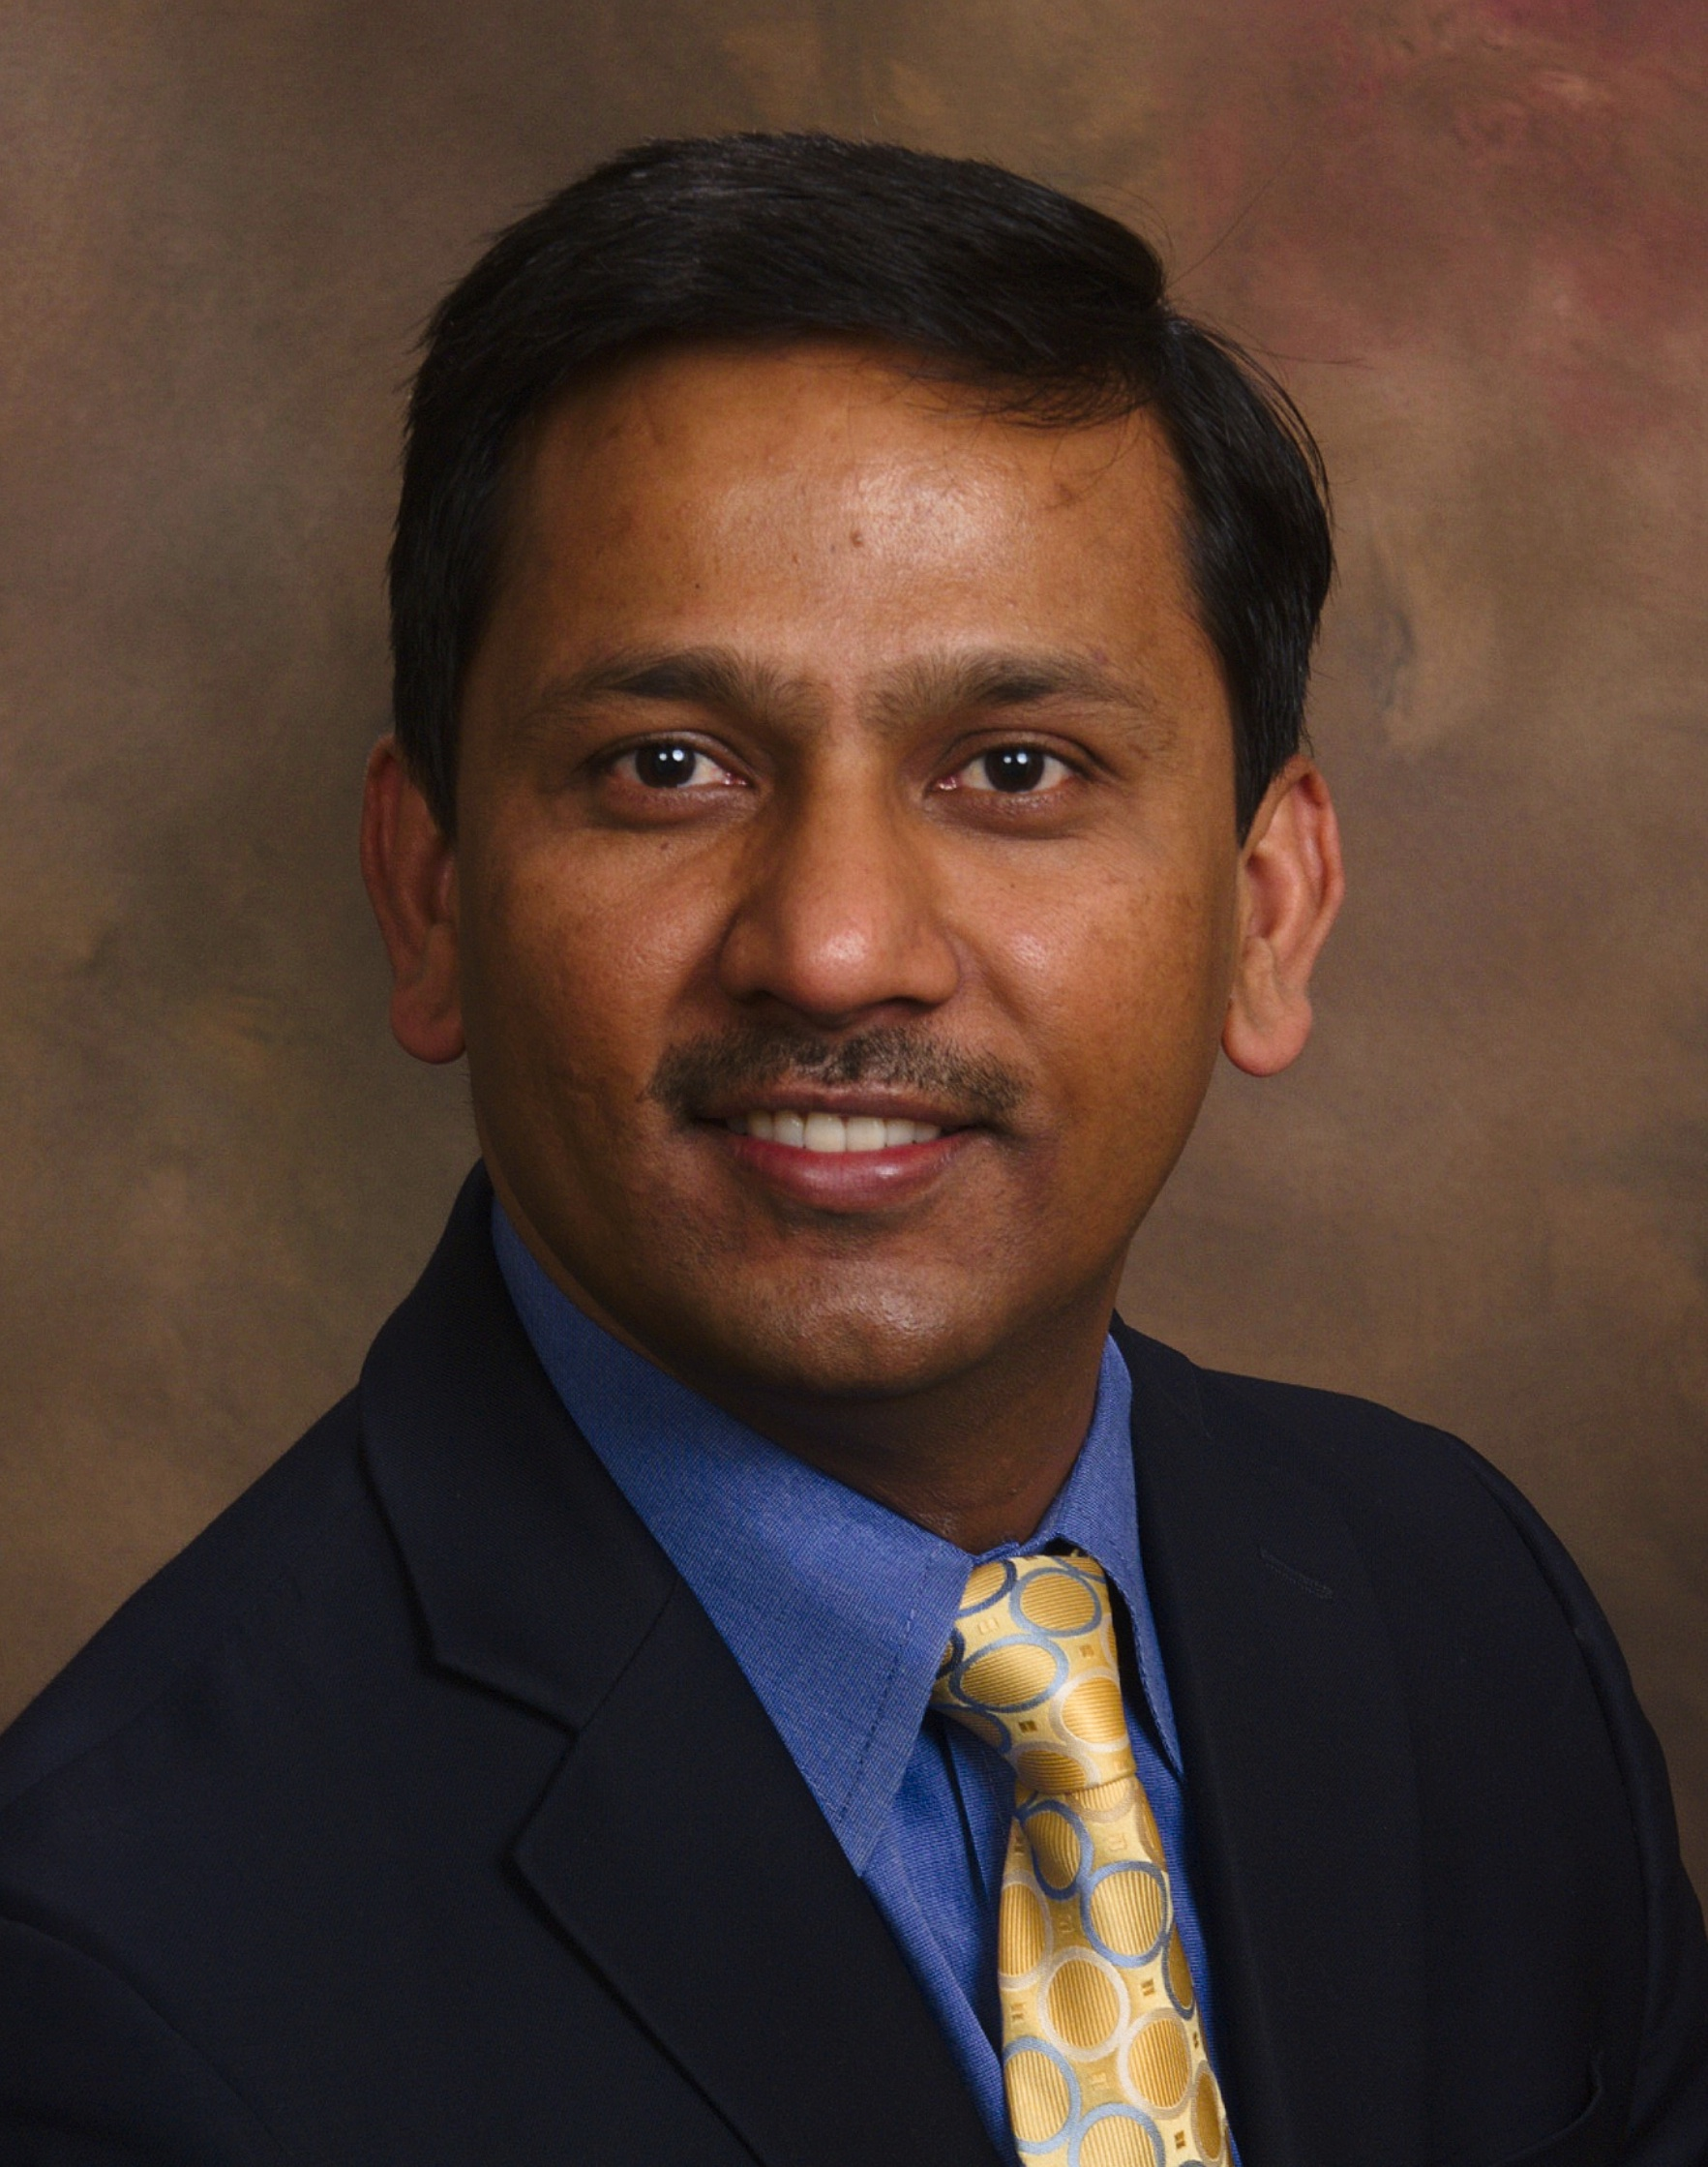 Deepak Sharma, MBBS, MD, DM Professor & Division Chief Neuroanesthesiology & Perioperative Neurosciences Program Director, Neuroanesthesiology Fellowship - Deepak_Sharma